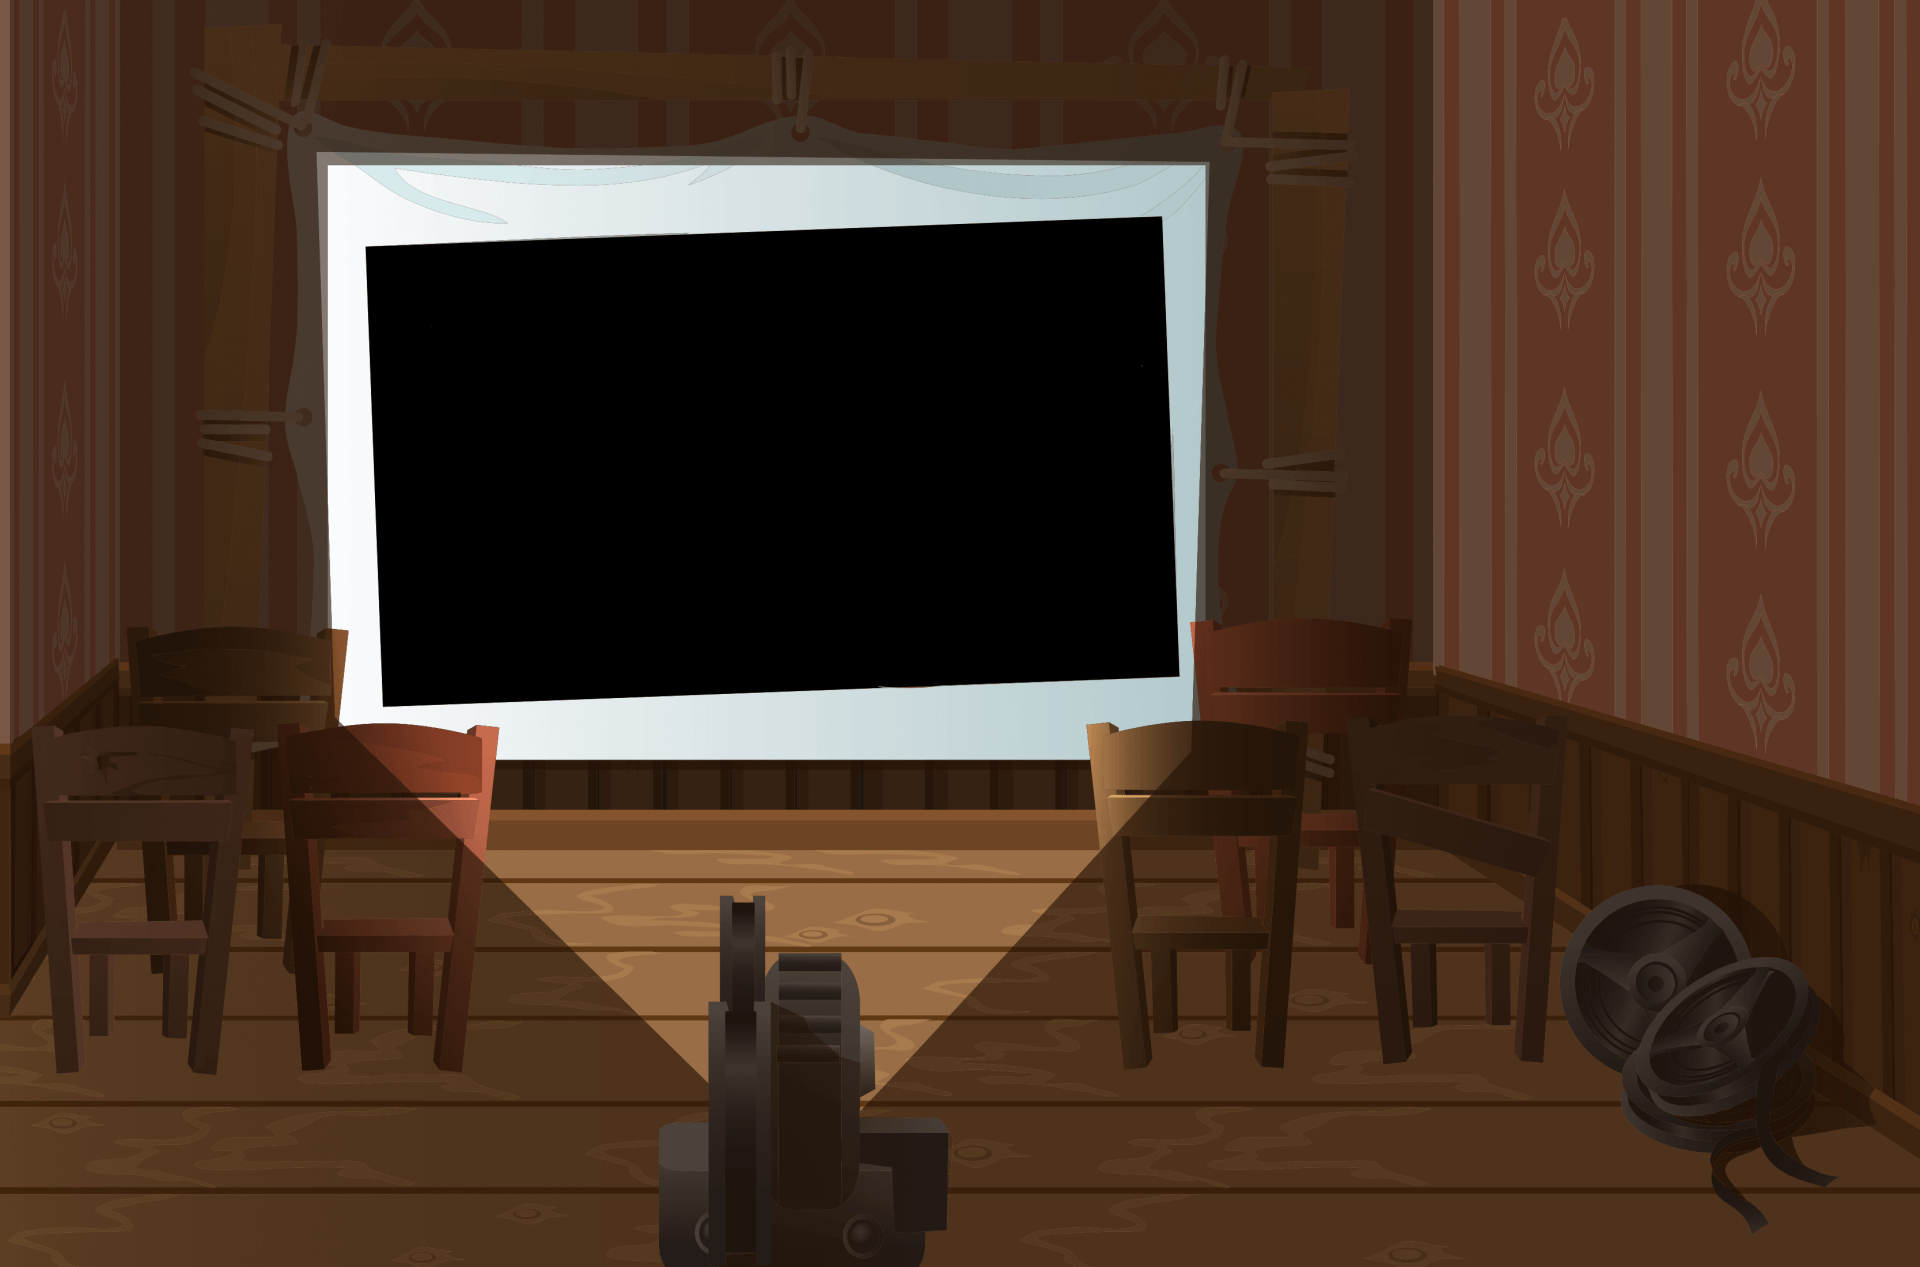 Background graphic of theatre with projector and screen for CleverOgre Easter egg